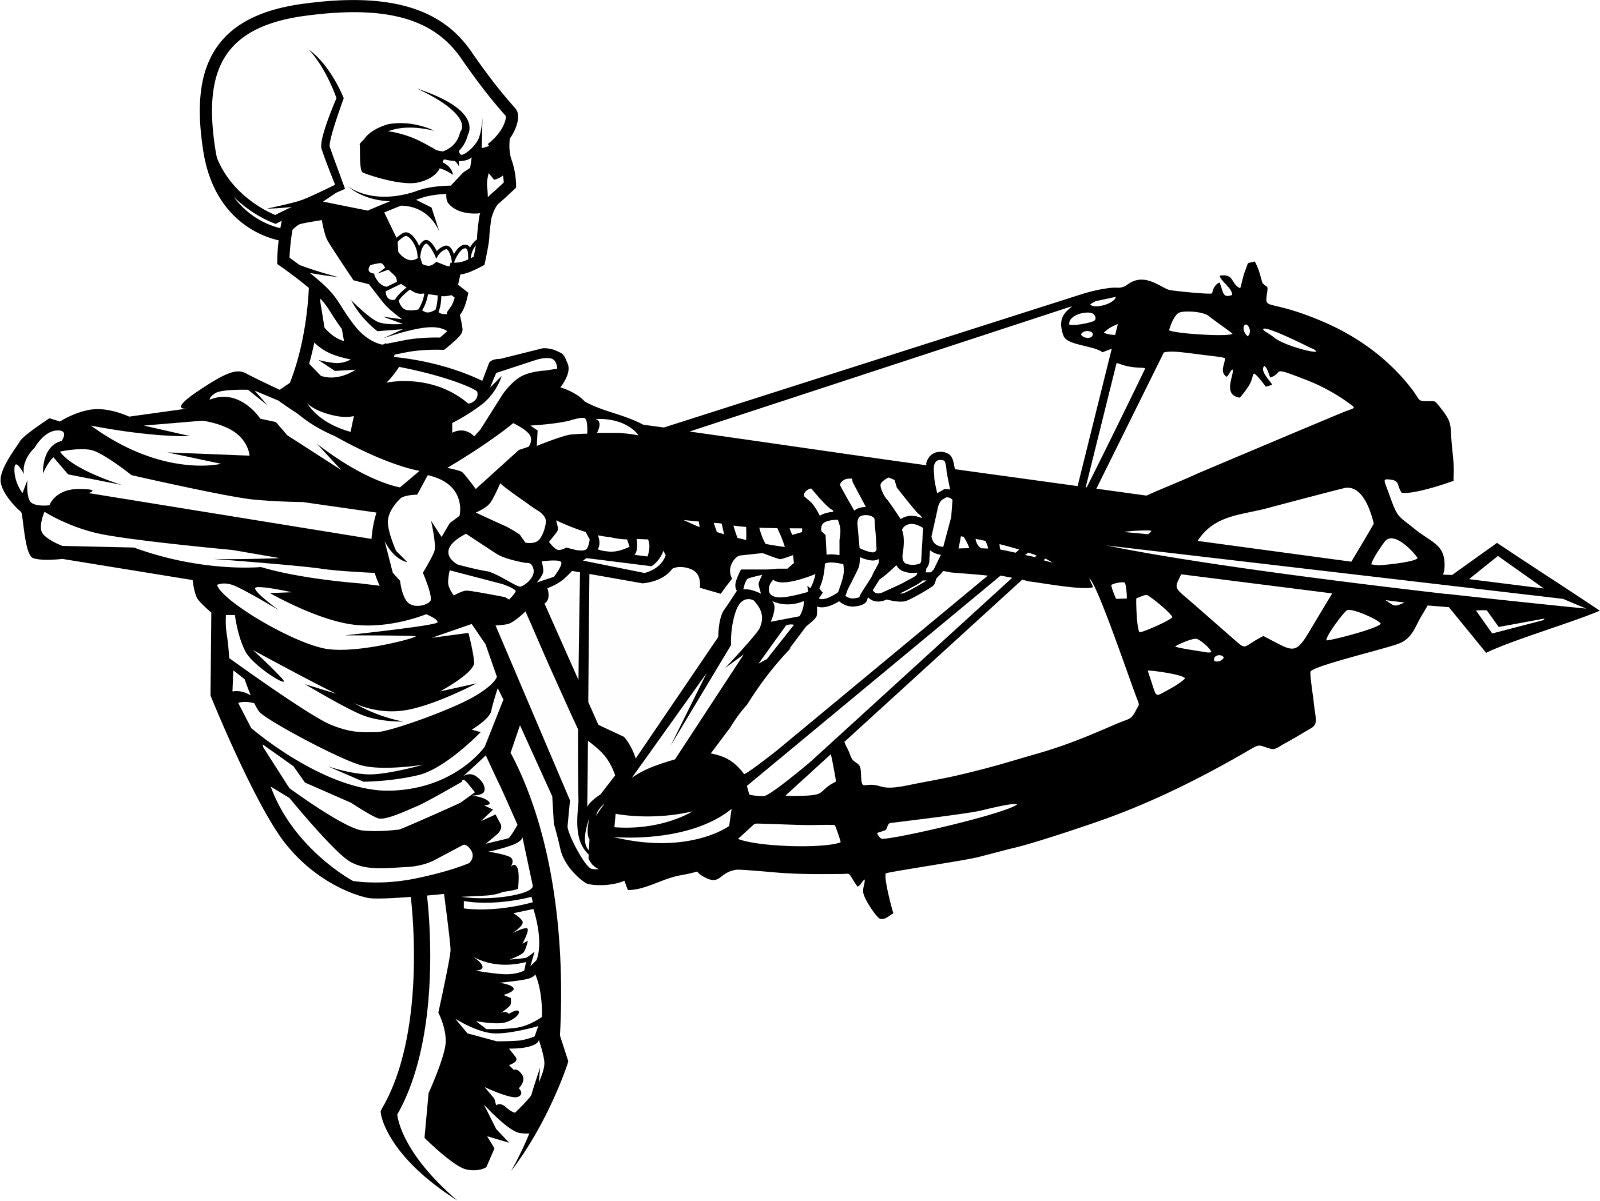 "Crossbow Skeleton Hunter Bow Deer Skull Car Truck Window Vinyl Decal Sticker - 8"" Long Edge"